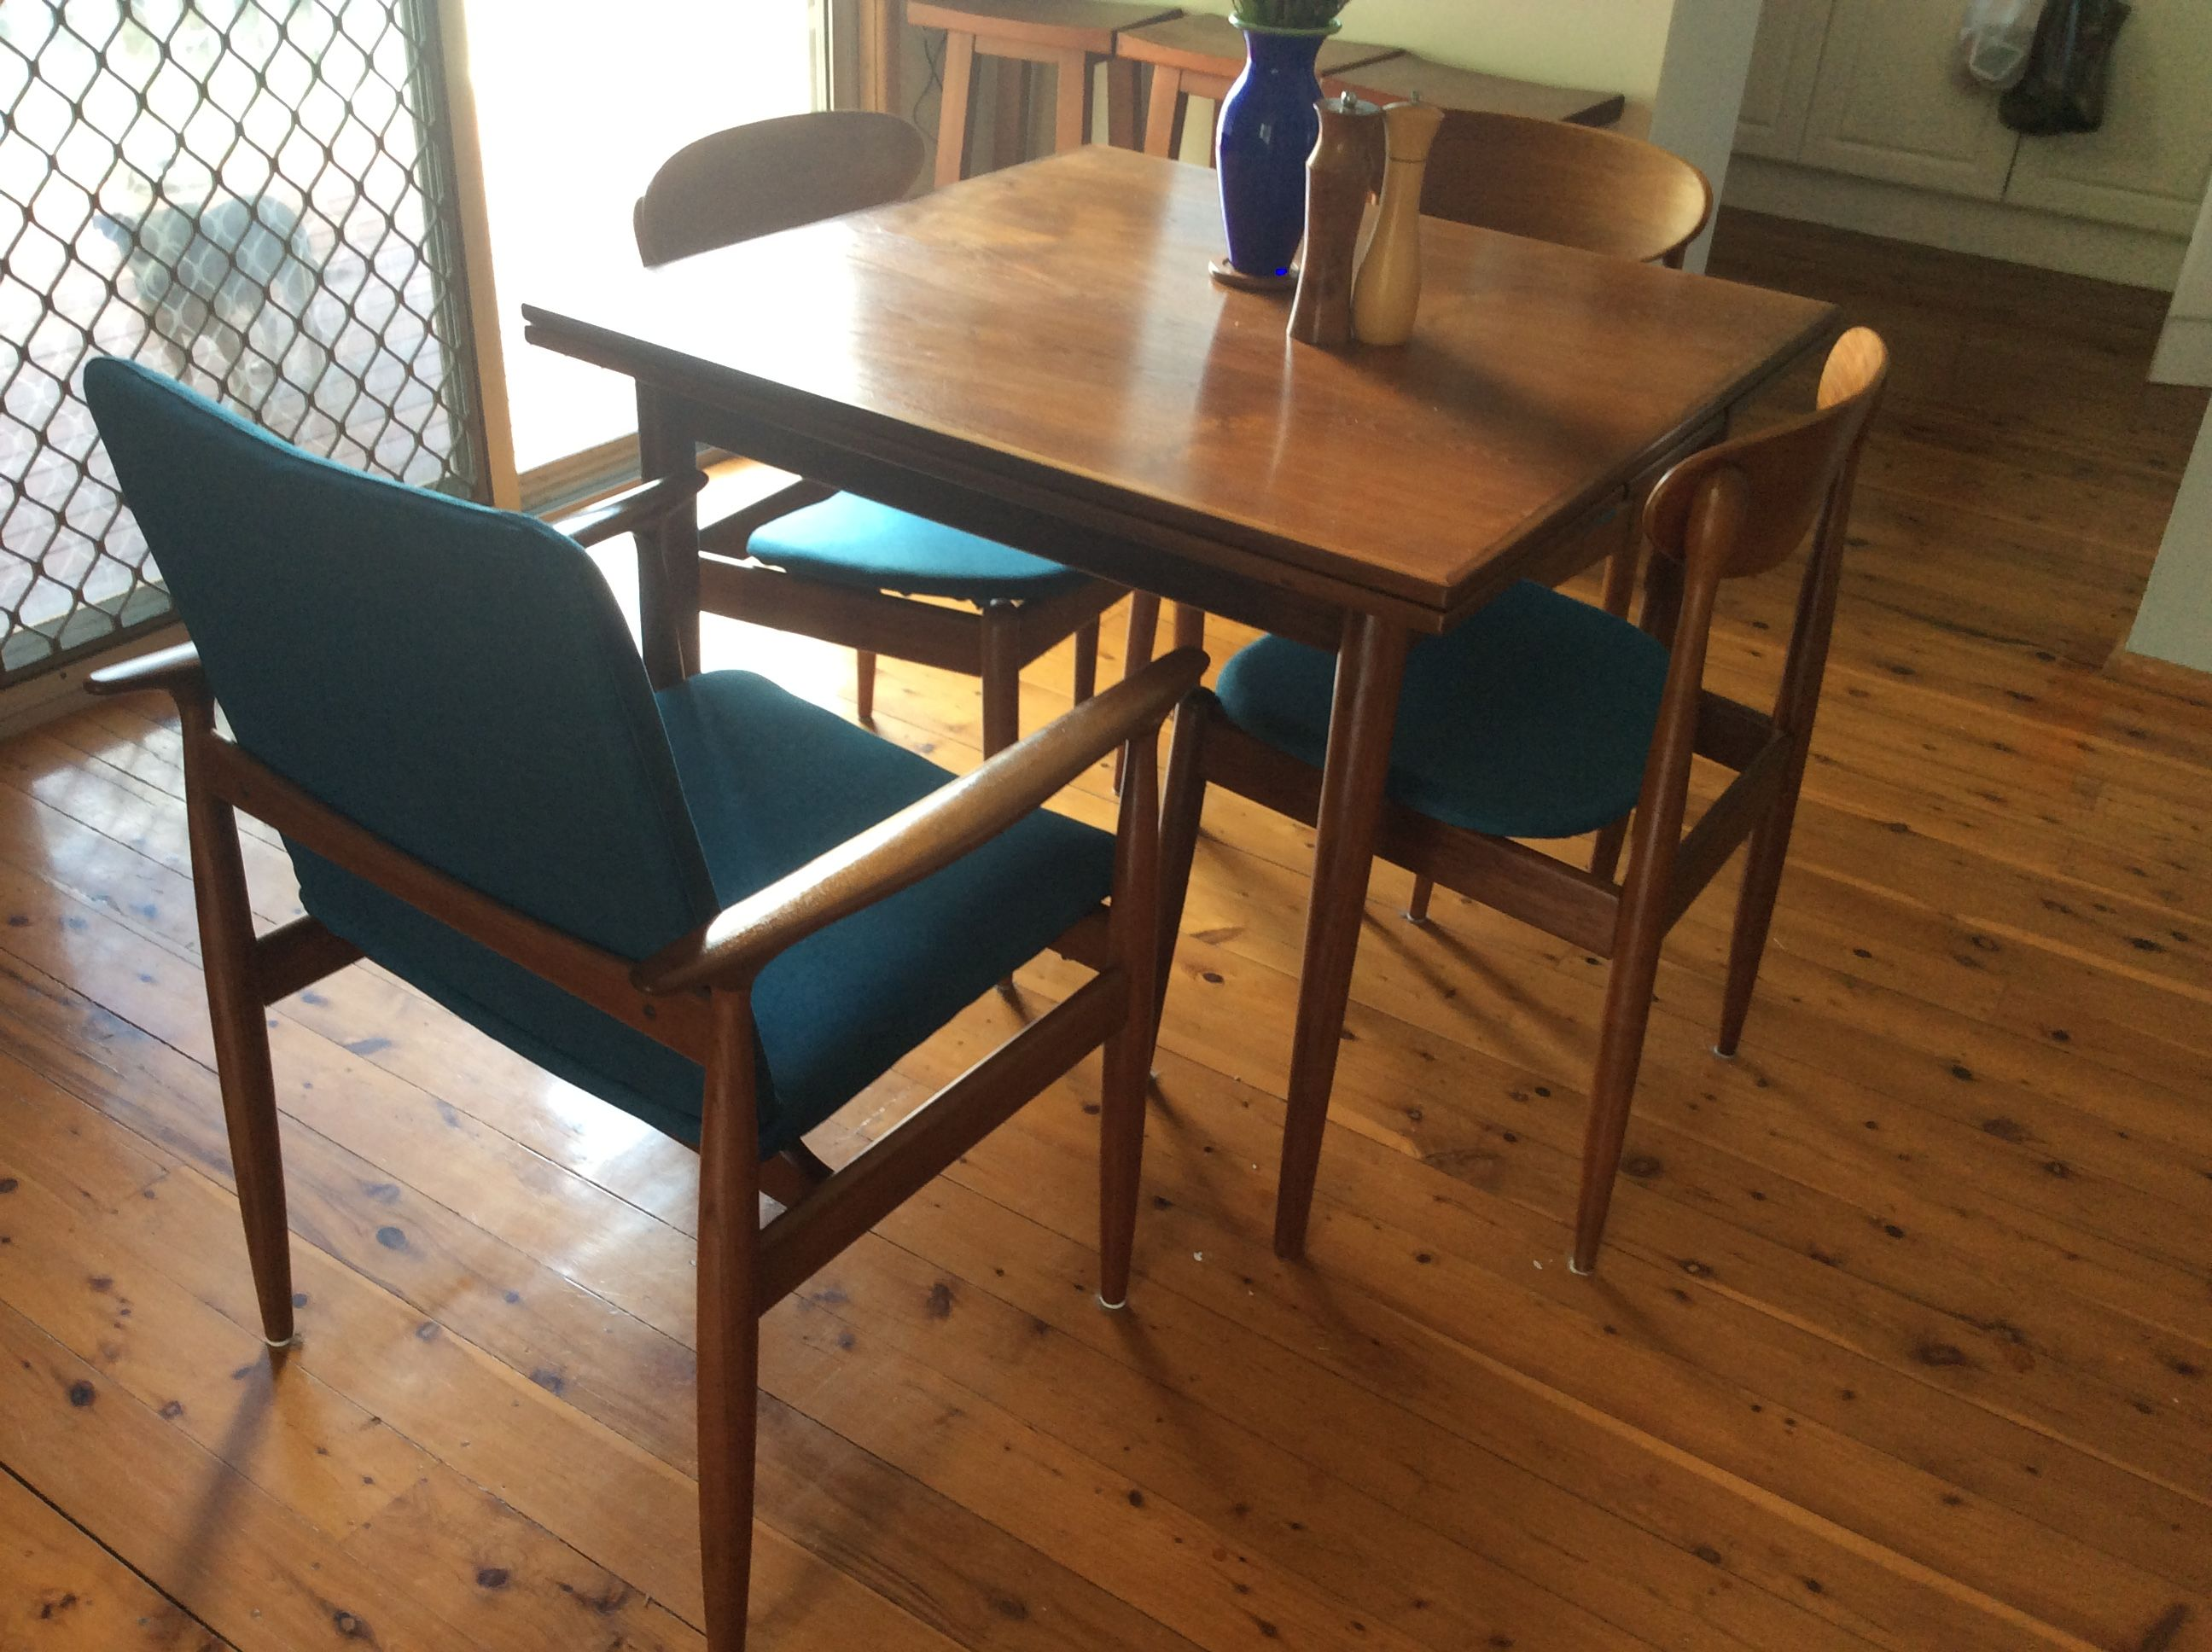 60s furniture dining table dining room dinning table set dining room table 1960s furniture diner table pin by tony buckley on parker 60s furniture   pinterest   60s      rh   pinterest com